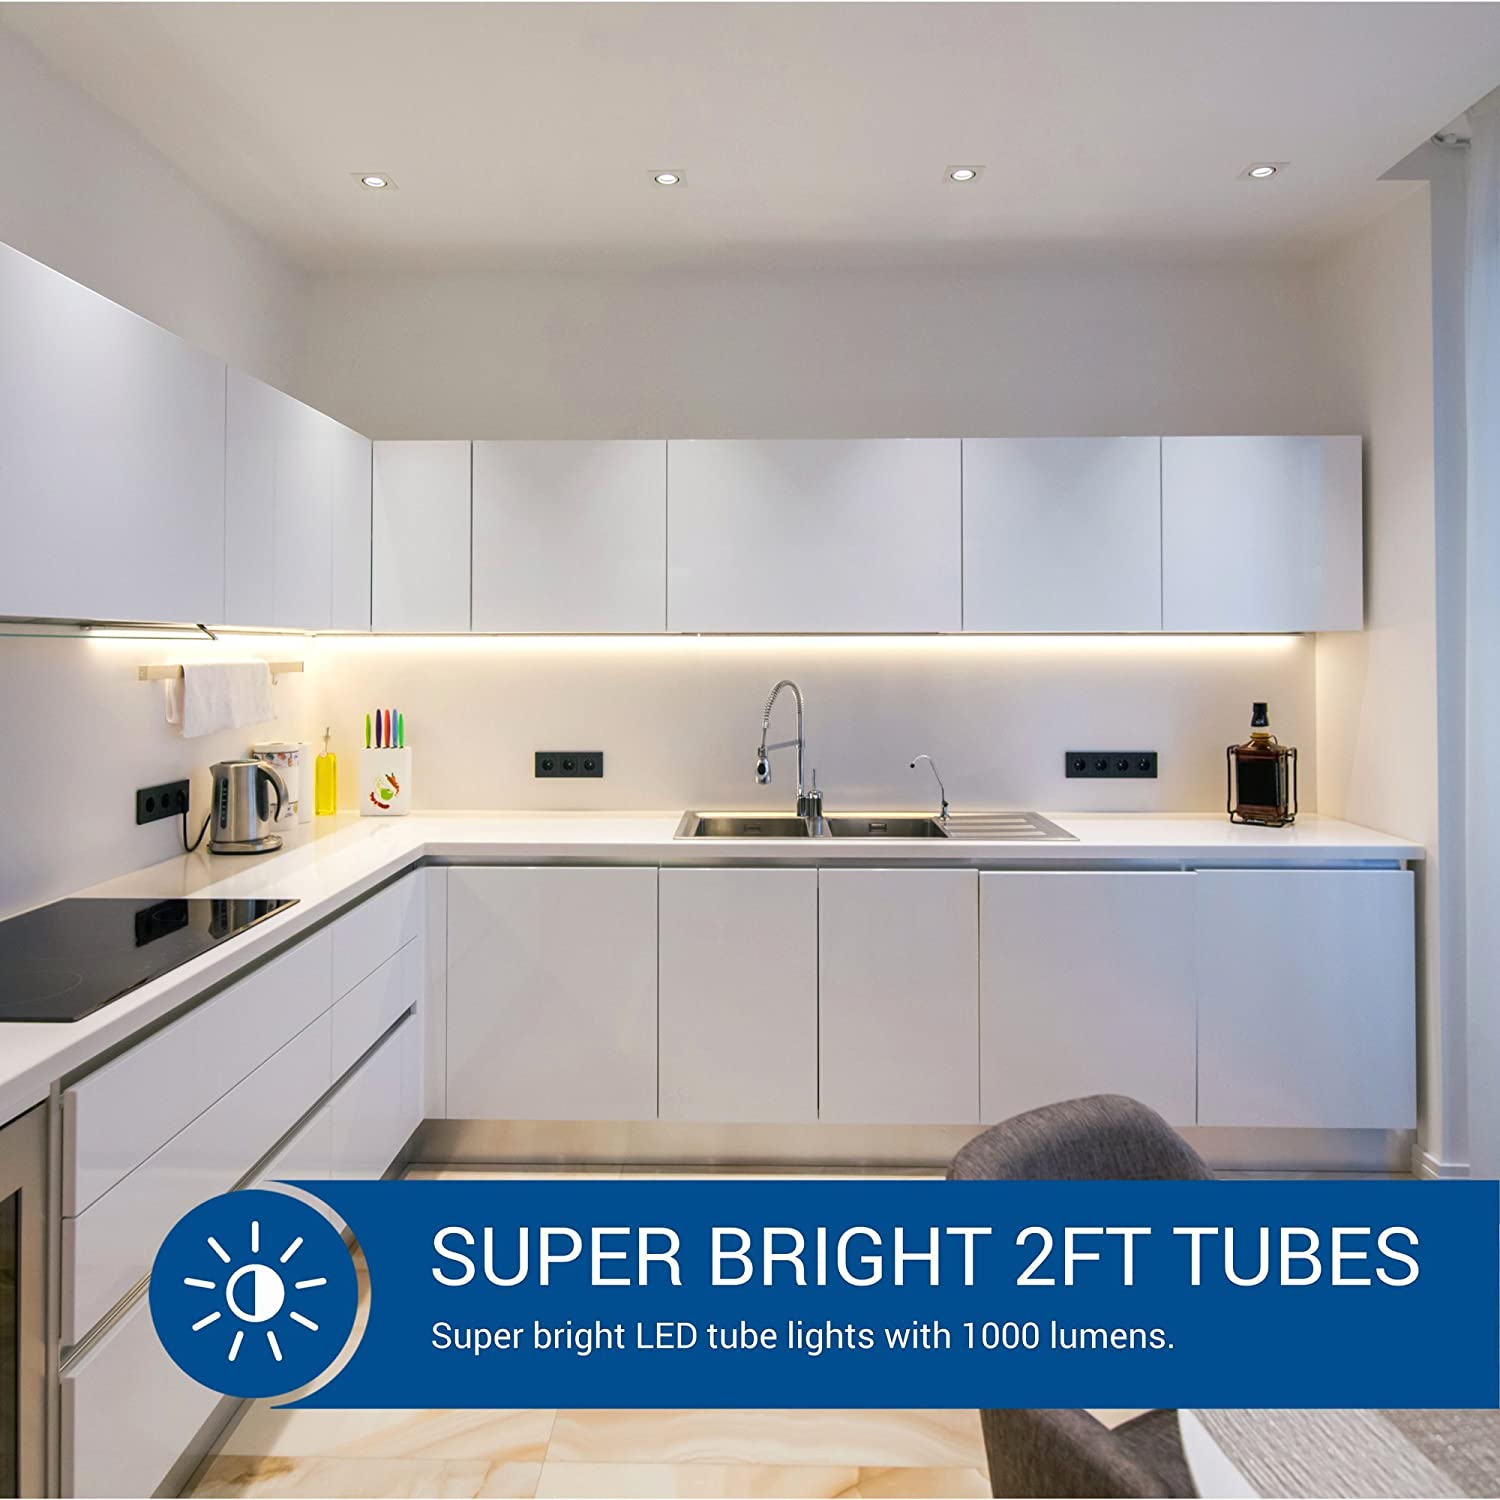 Hyperikon T T T Ft LED Bulbs Fluorescent Replacement Tube - Led tube lights for kitchen ceiling